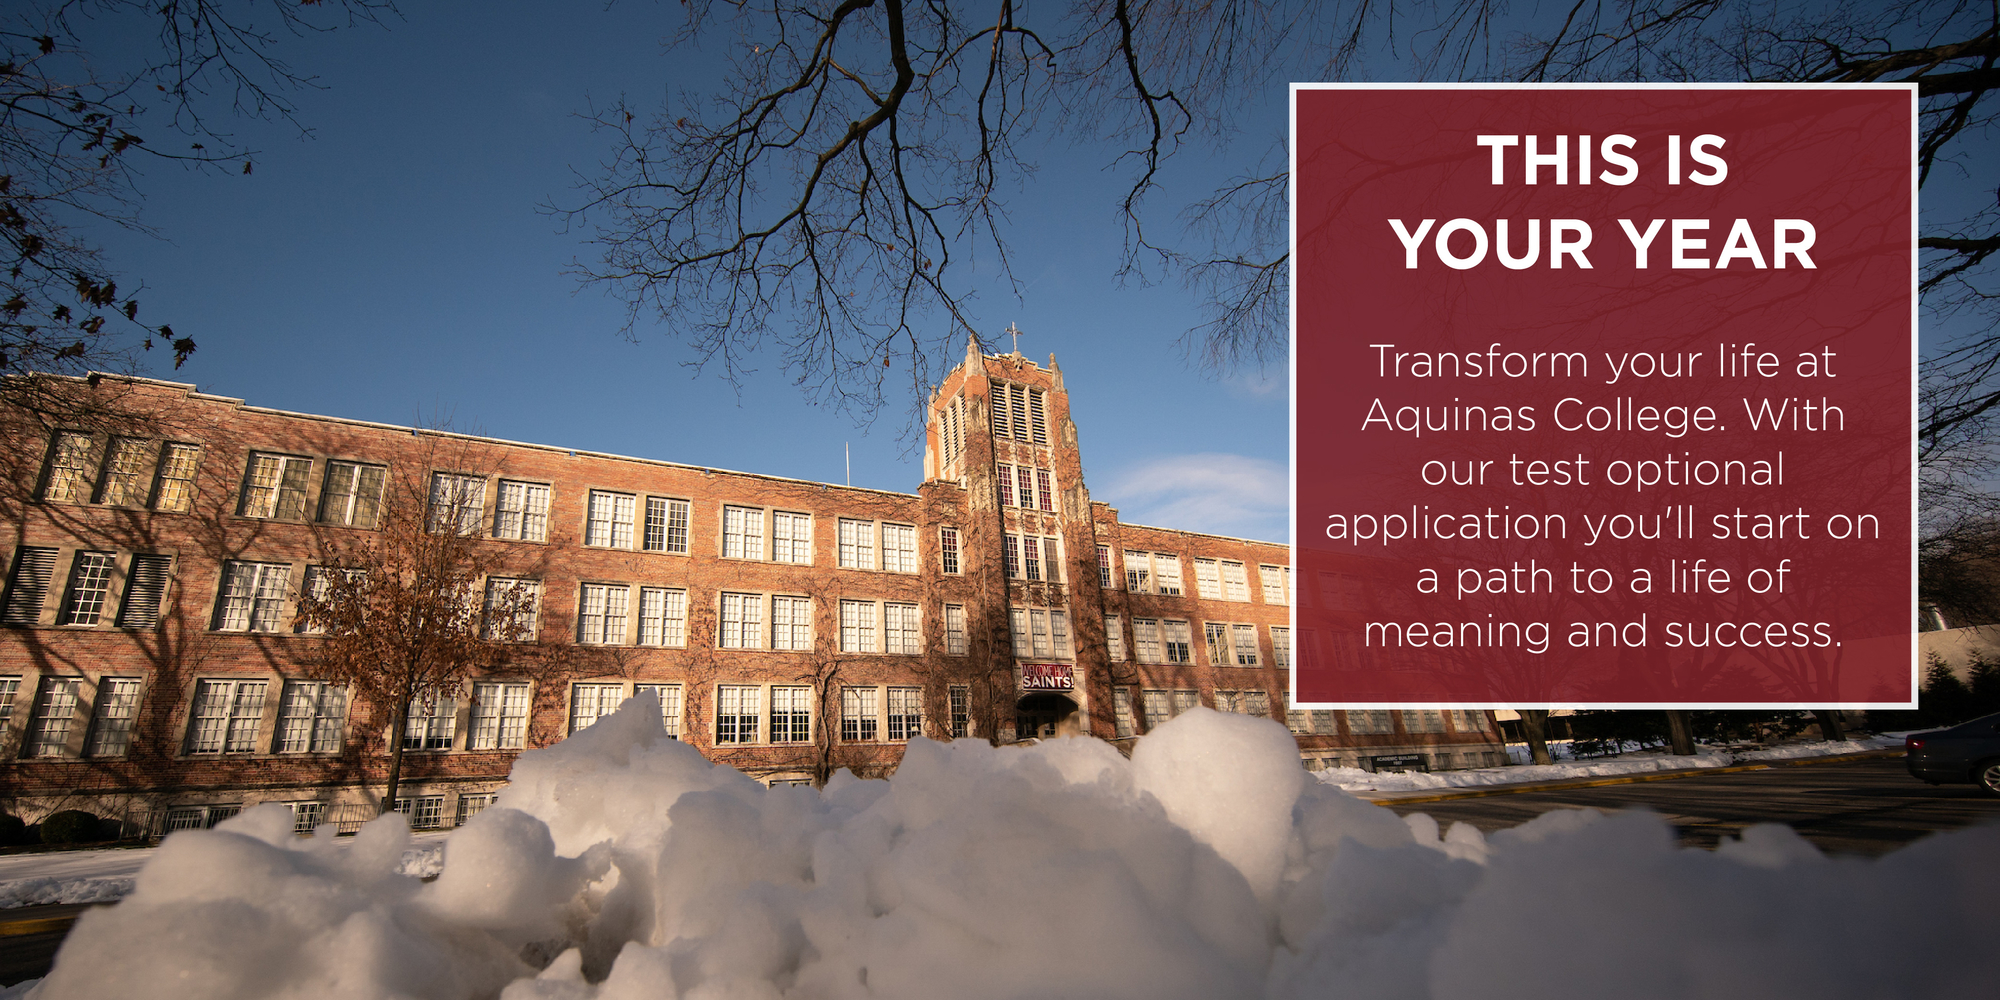 Transform your life at Aquinas College. With our test optional application you'll start on a path to a life of meaning and success.